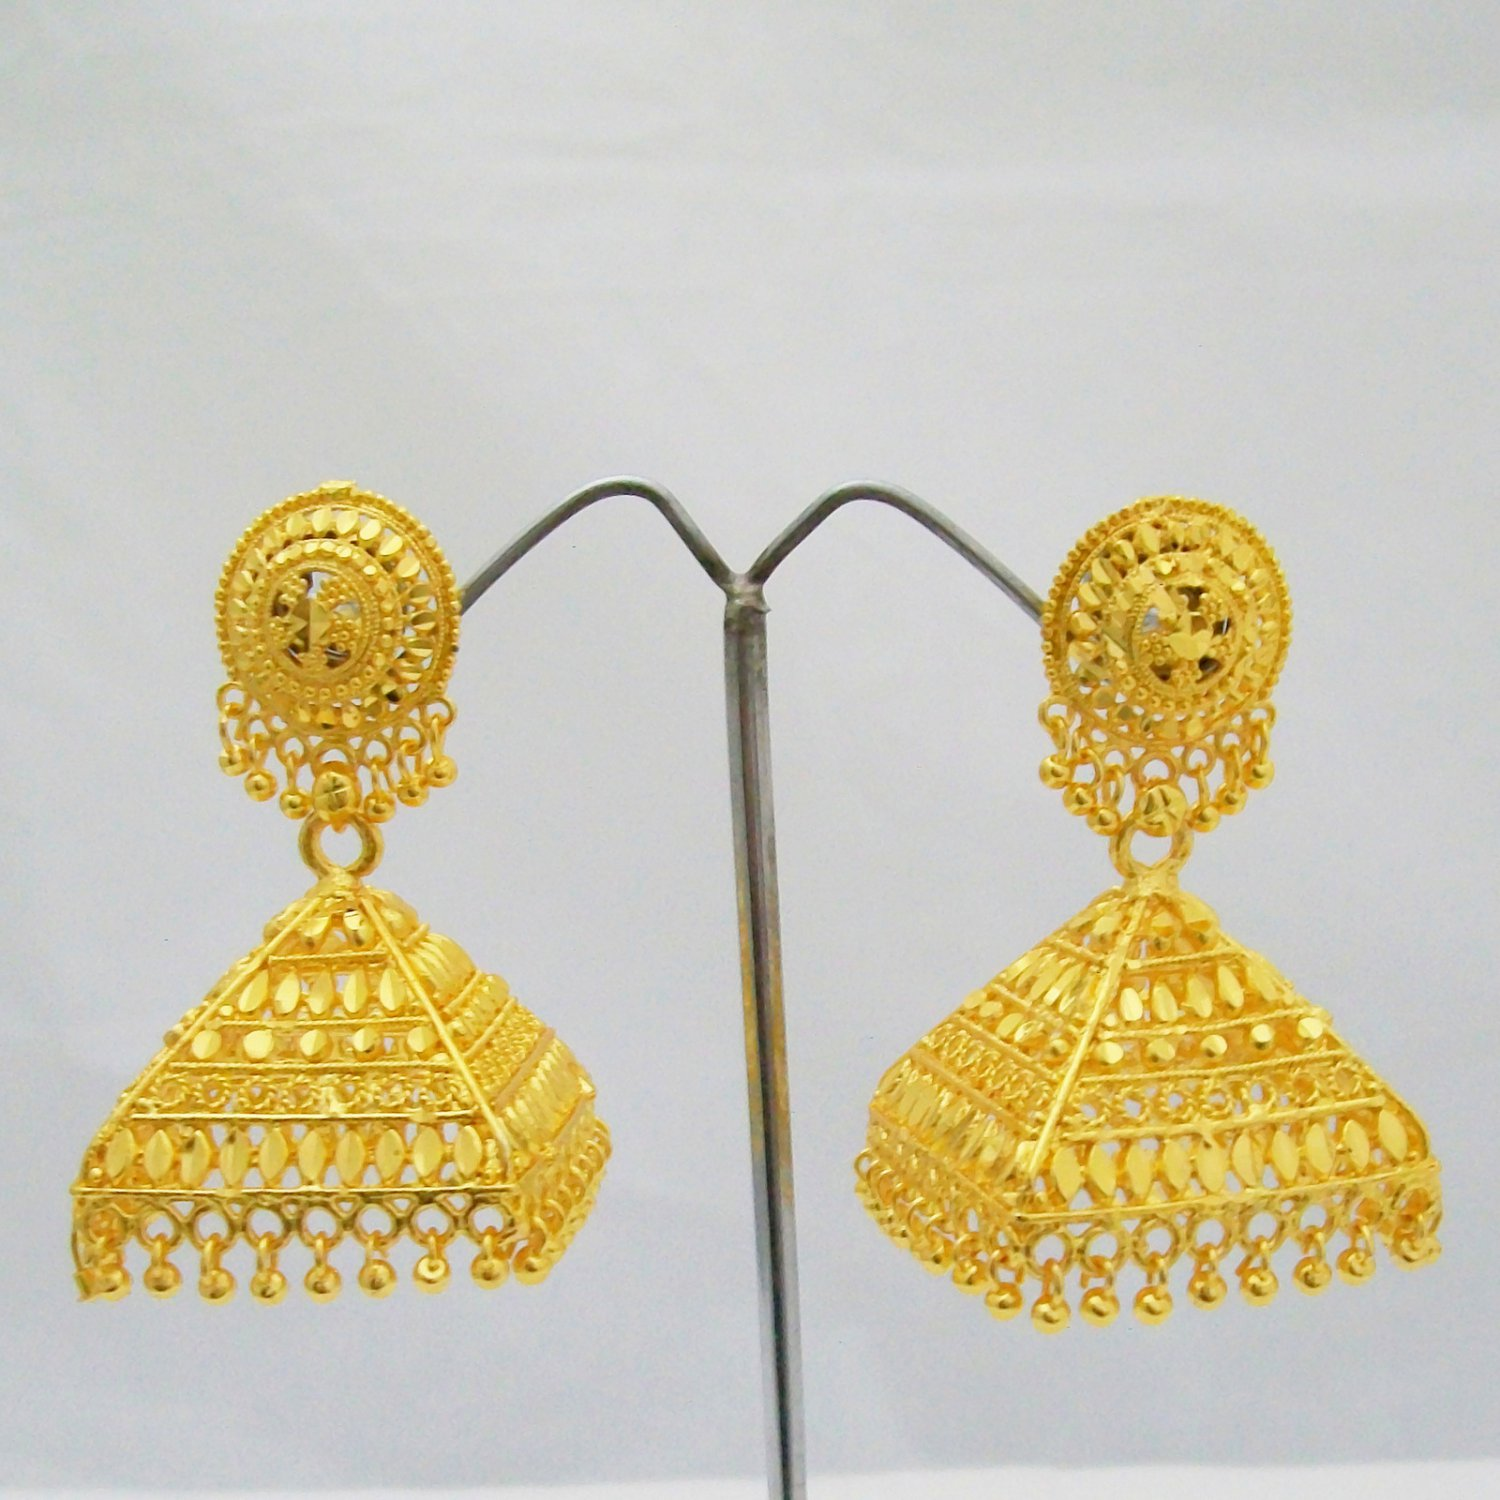 Large Gold Plated Jhumka Earrings Pyramid Pattern Rajasthan India